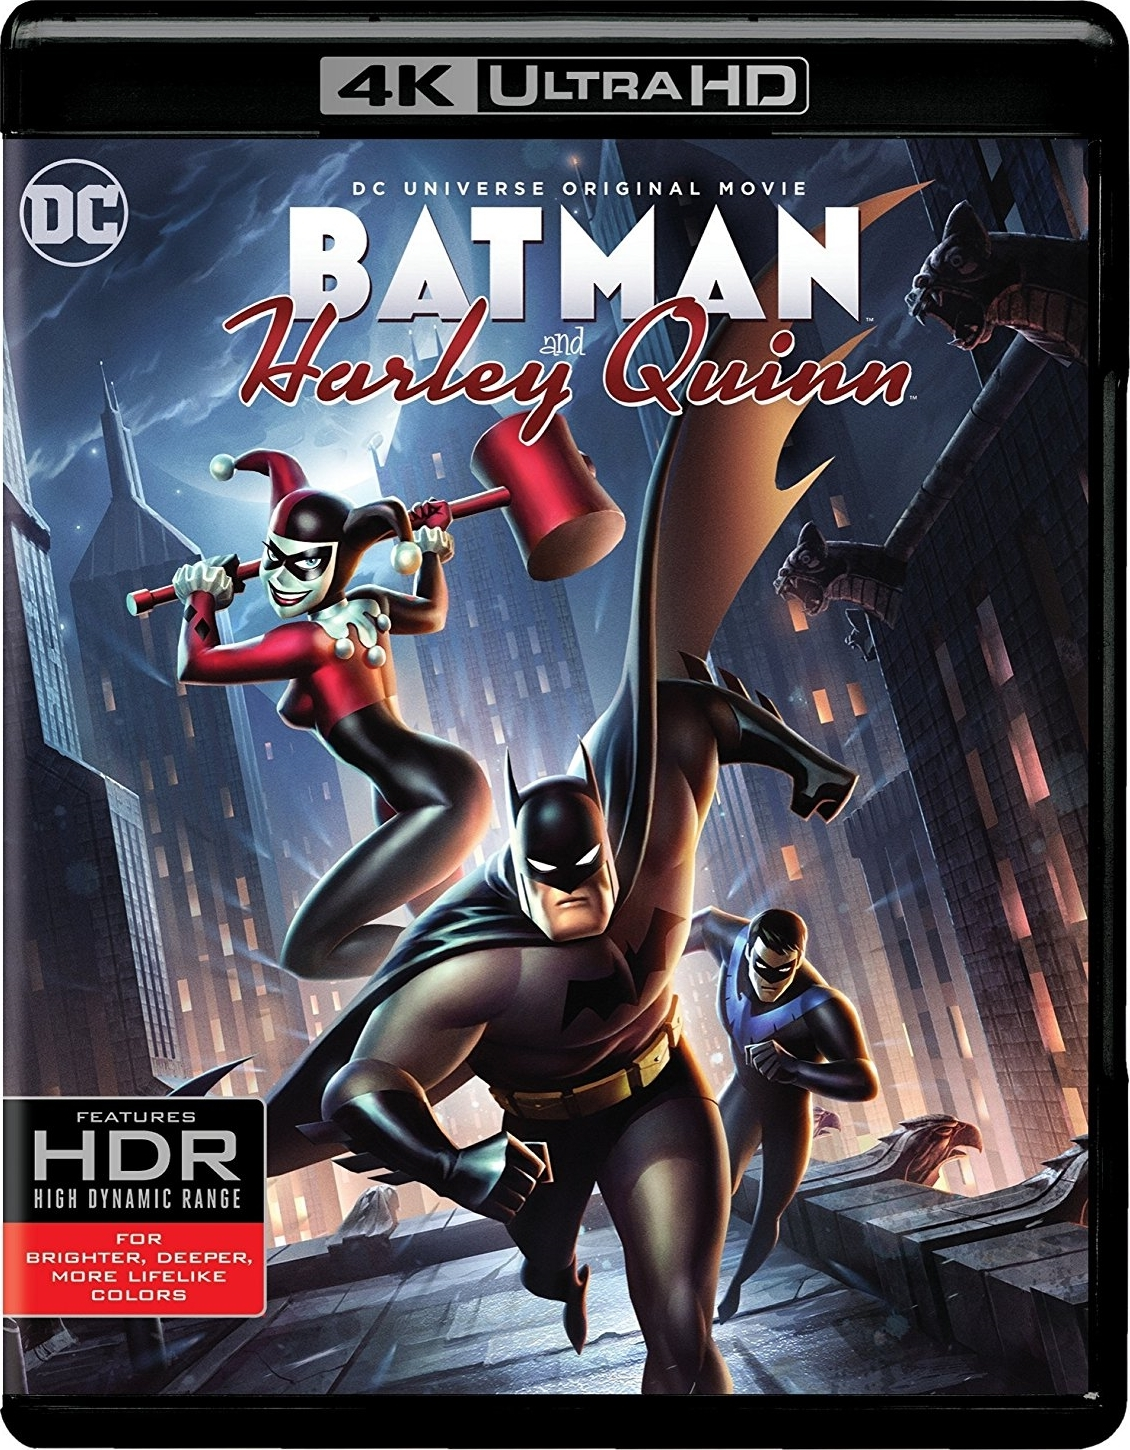 Batman and Harley Quinn 4K (2017) UHD Ultra HD Blu-ray